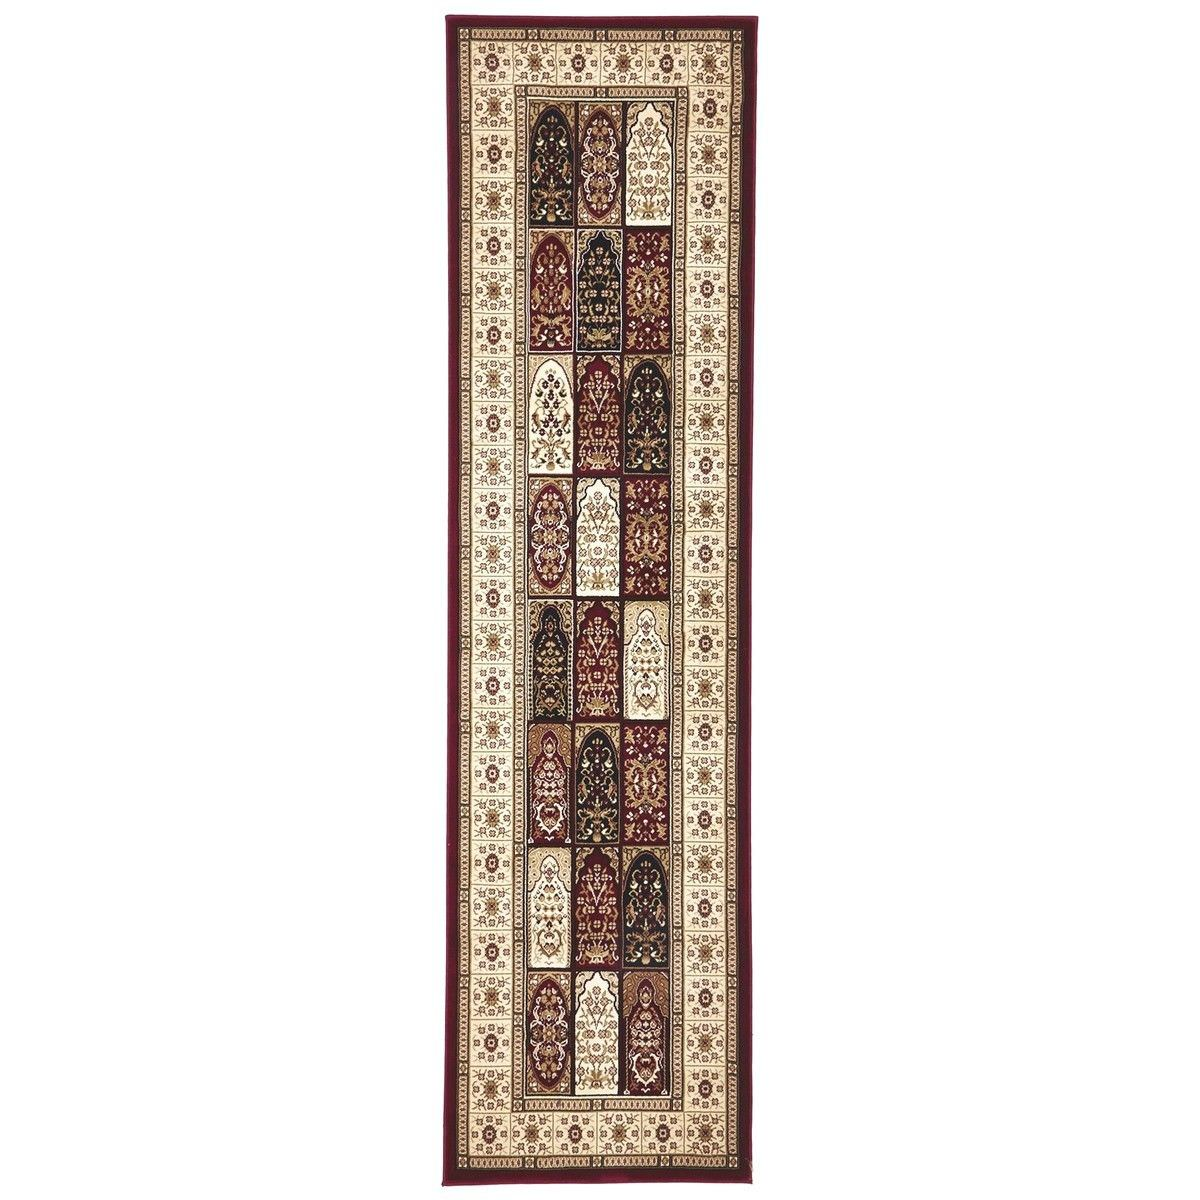 Sydney Traditional Tile Turkish Made Oriental Runner Rug, 300x80cm, Red / Ivory